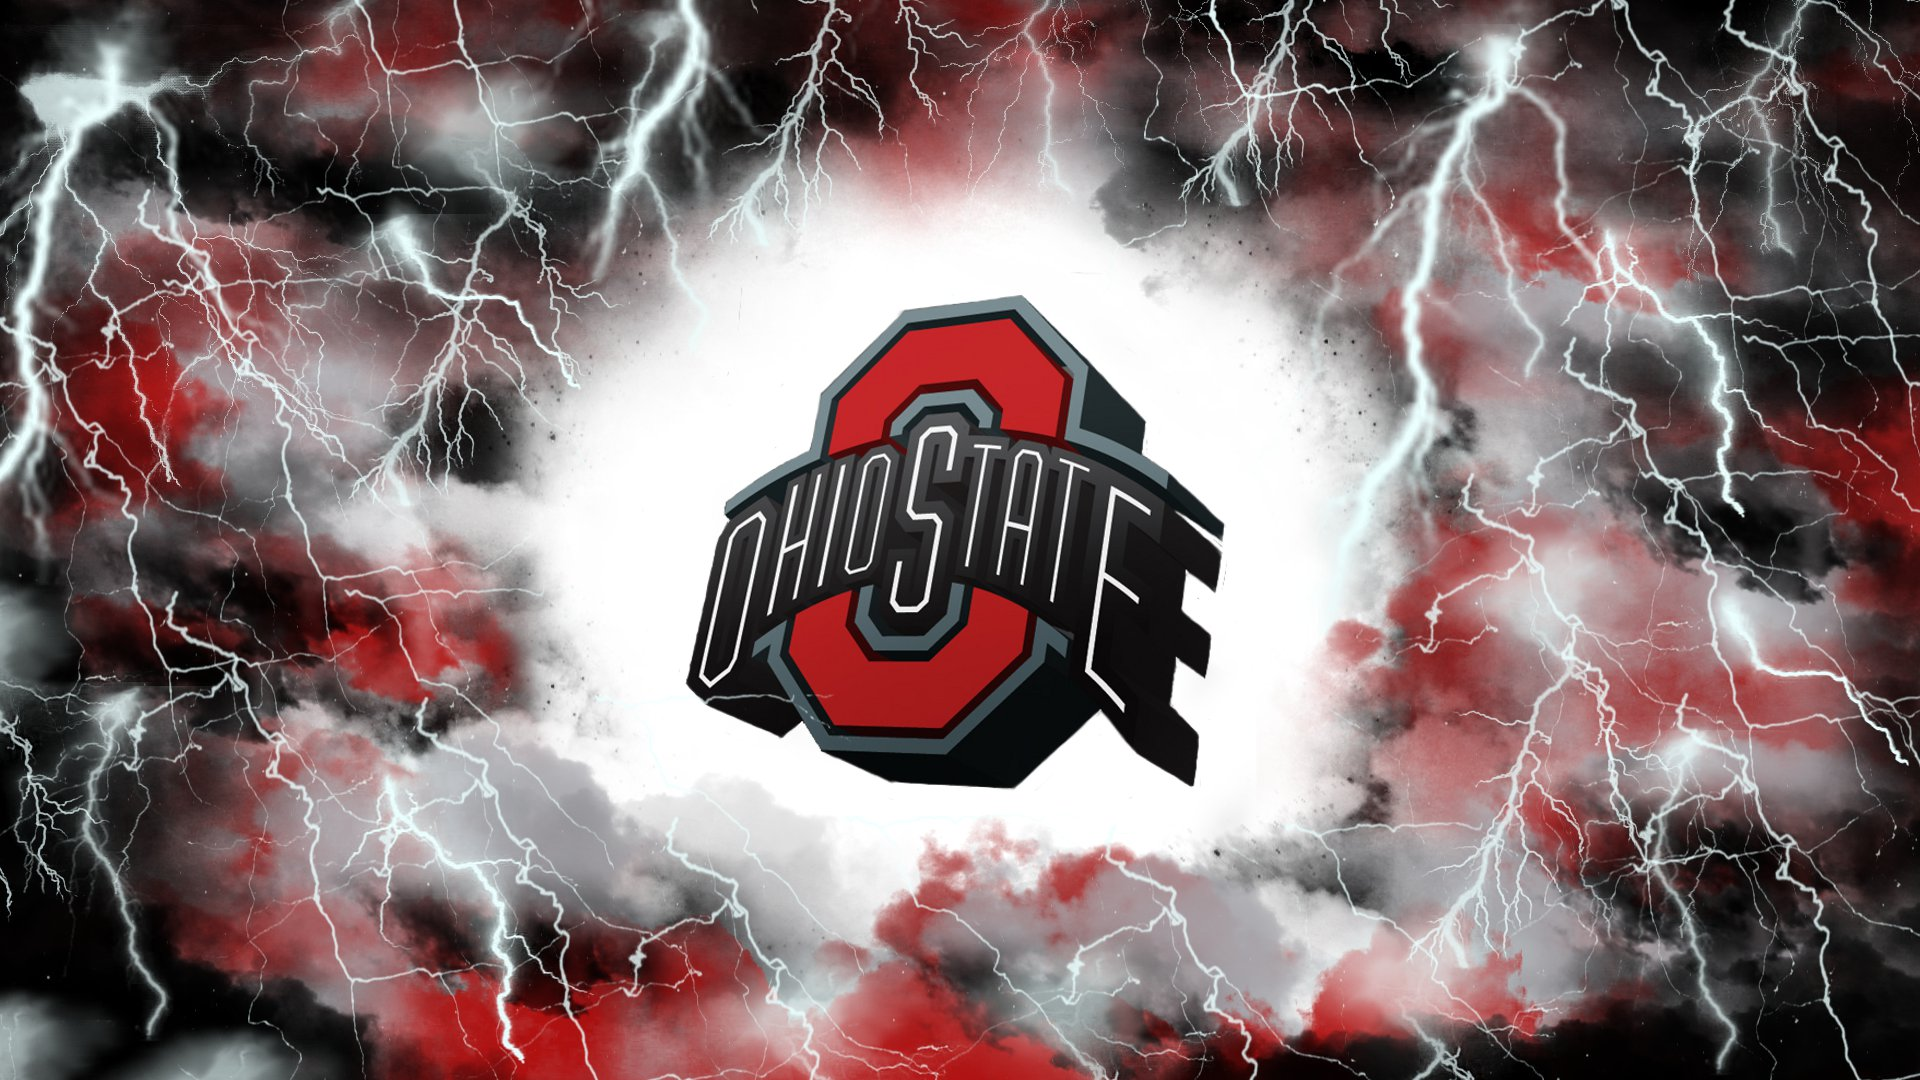 OHIO STATE BUCKEYES college football 21 wallpaper 1920x1080